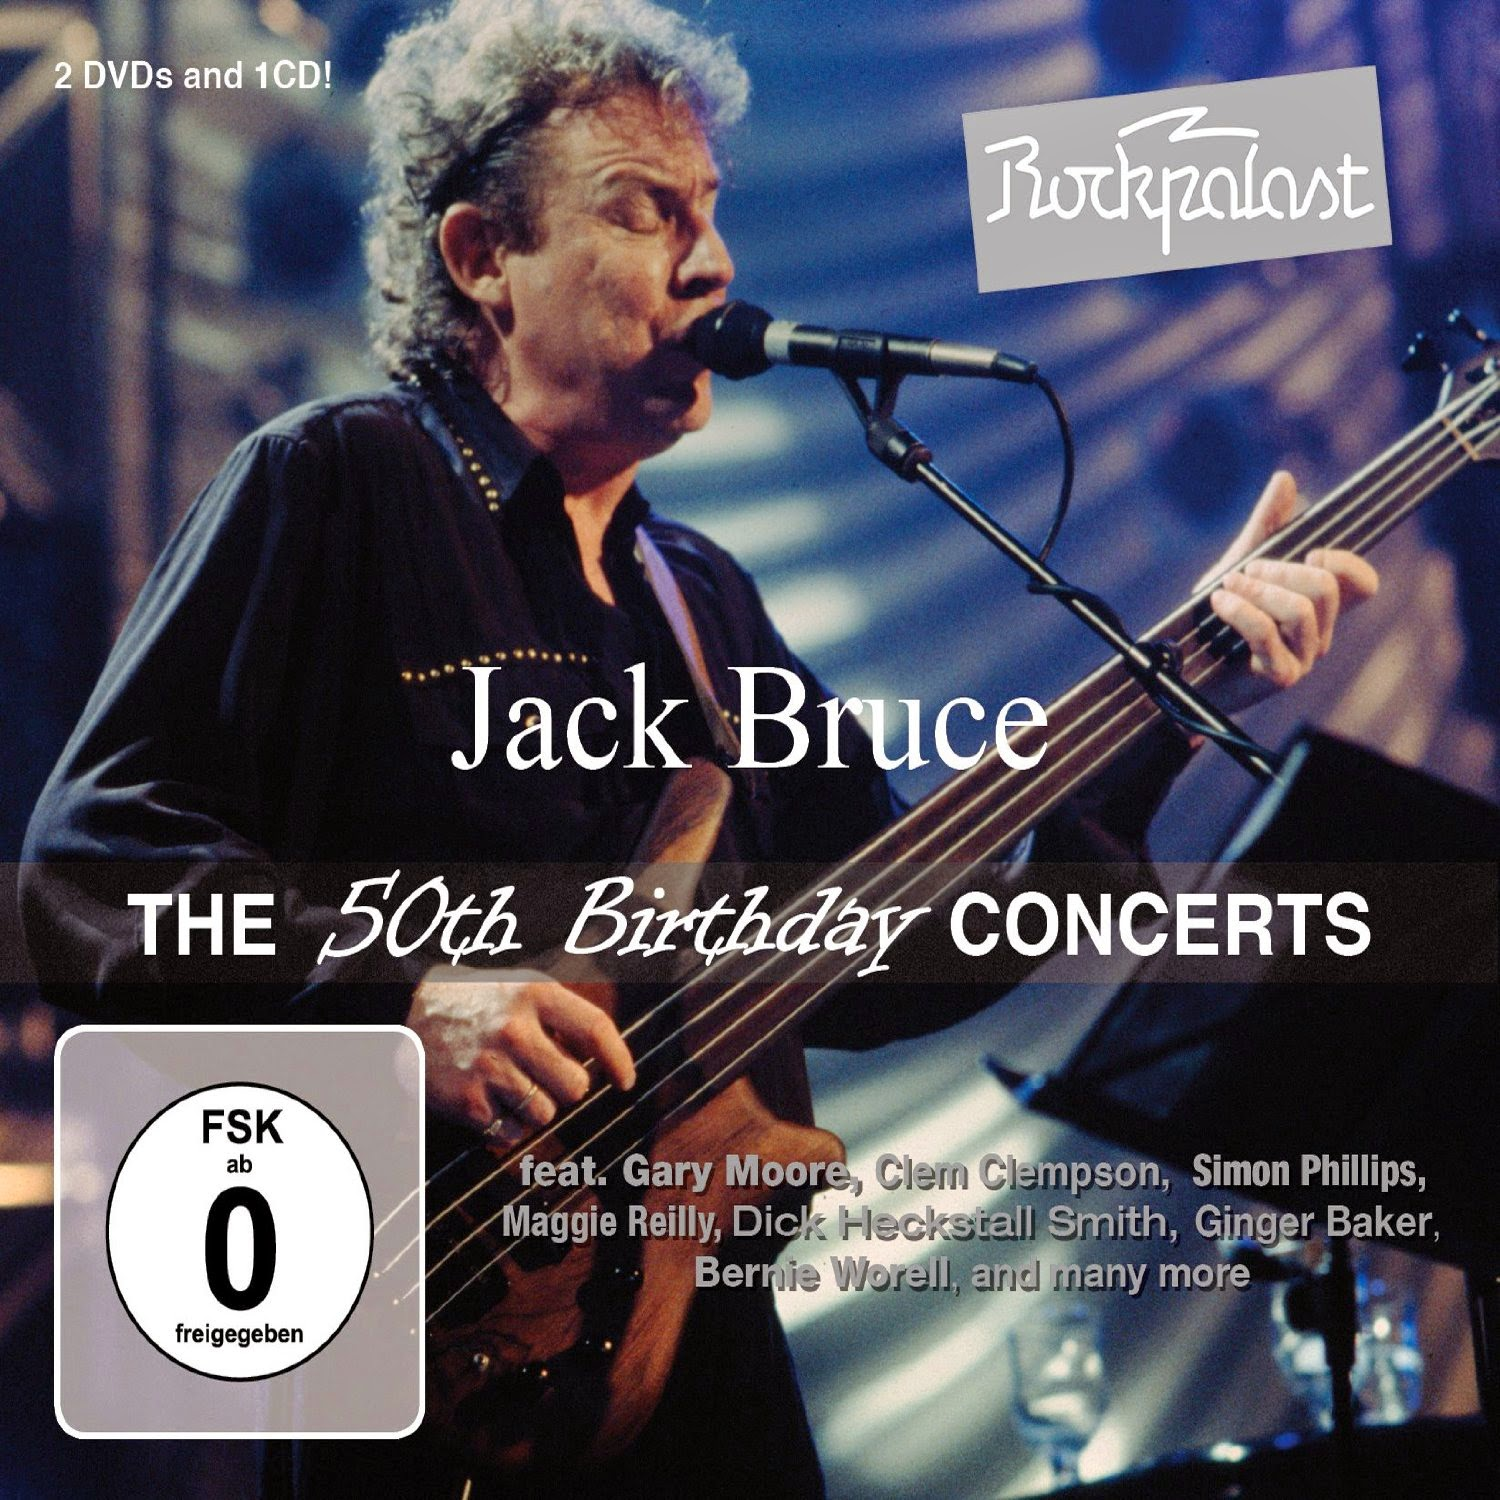 Jack Bruce's The 50th Birthday Concerts